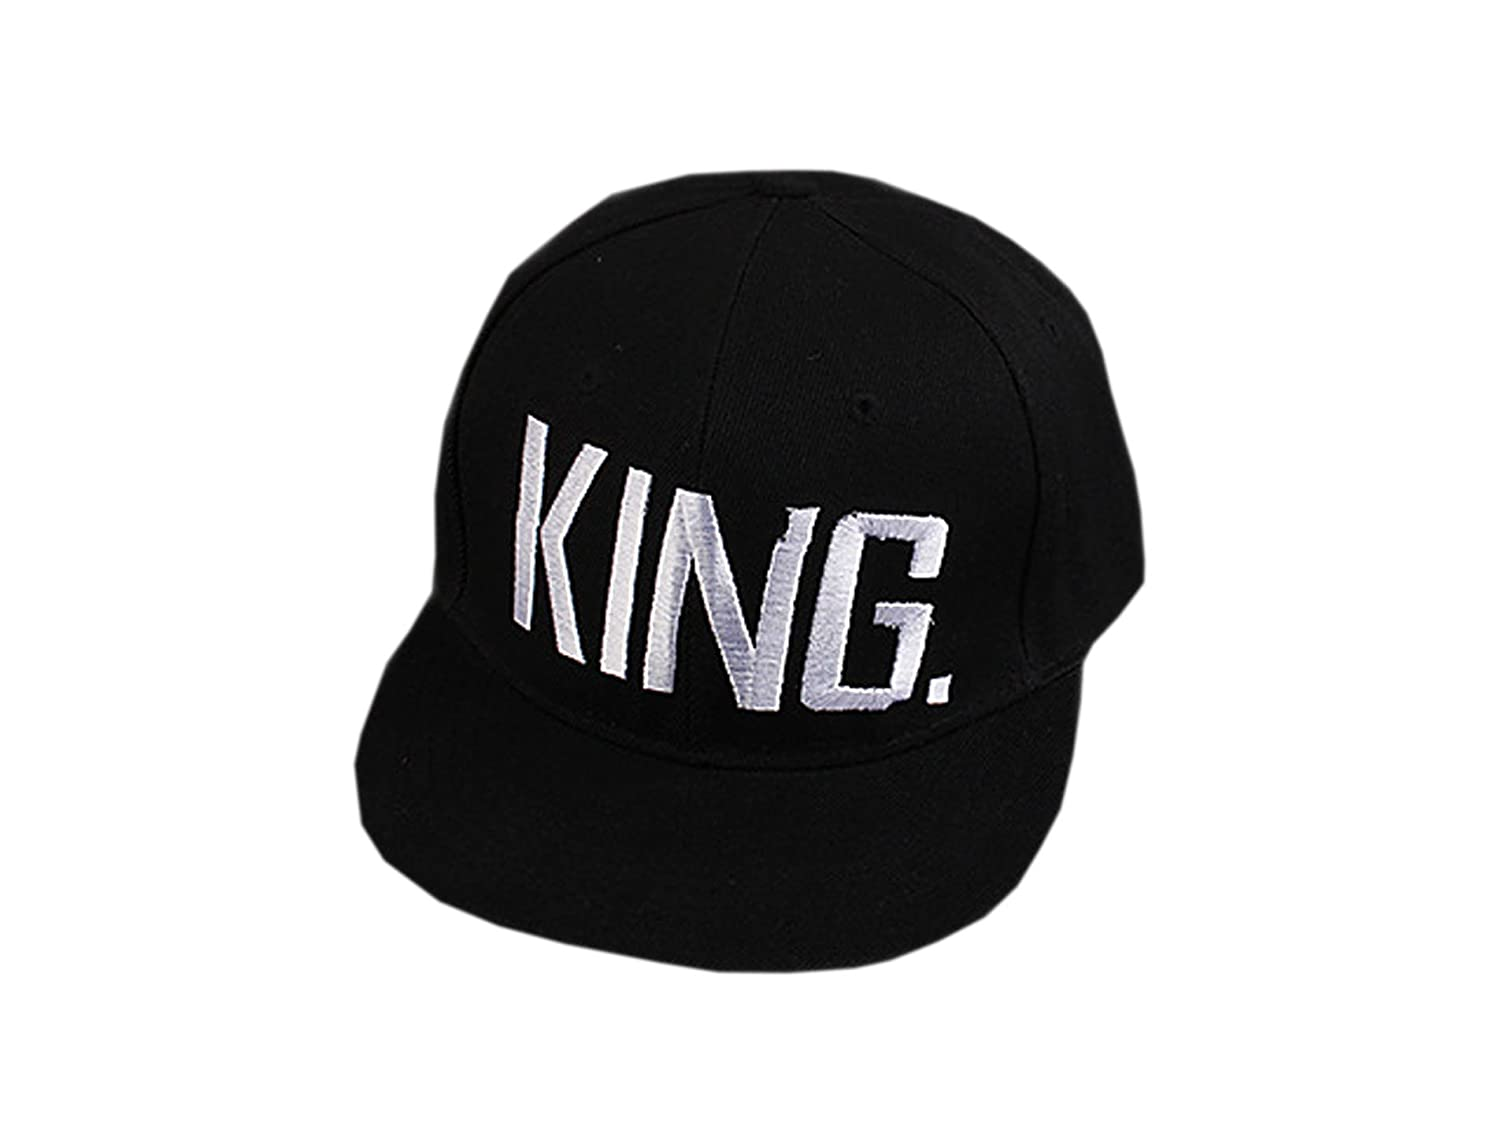 14e69a1de3e95 Buy Handcuffs BFVCU08 Cotton Adjustable King and Queen Caps (Black) Online  at Low Prices in India - Amazon.in